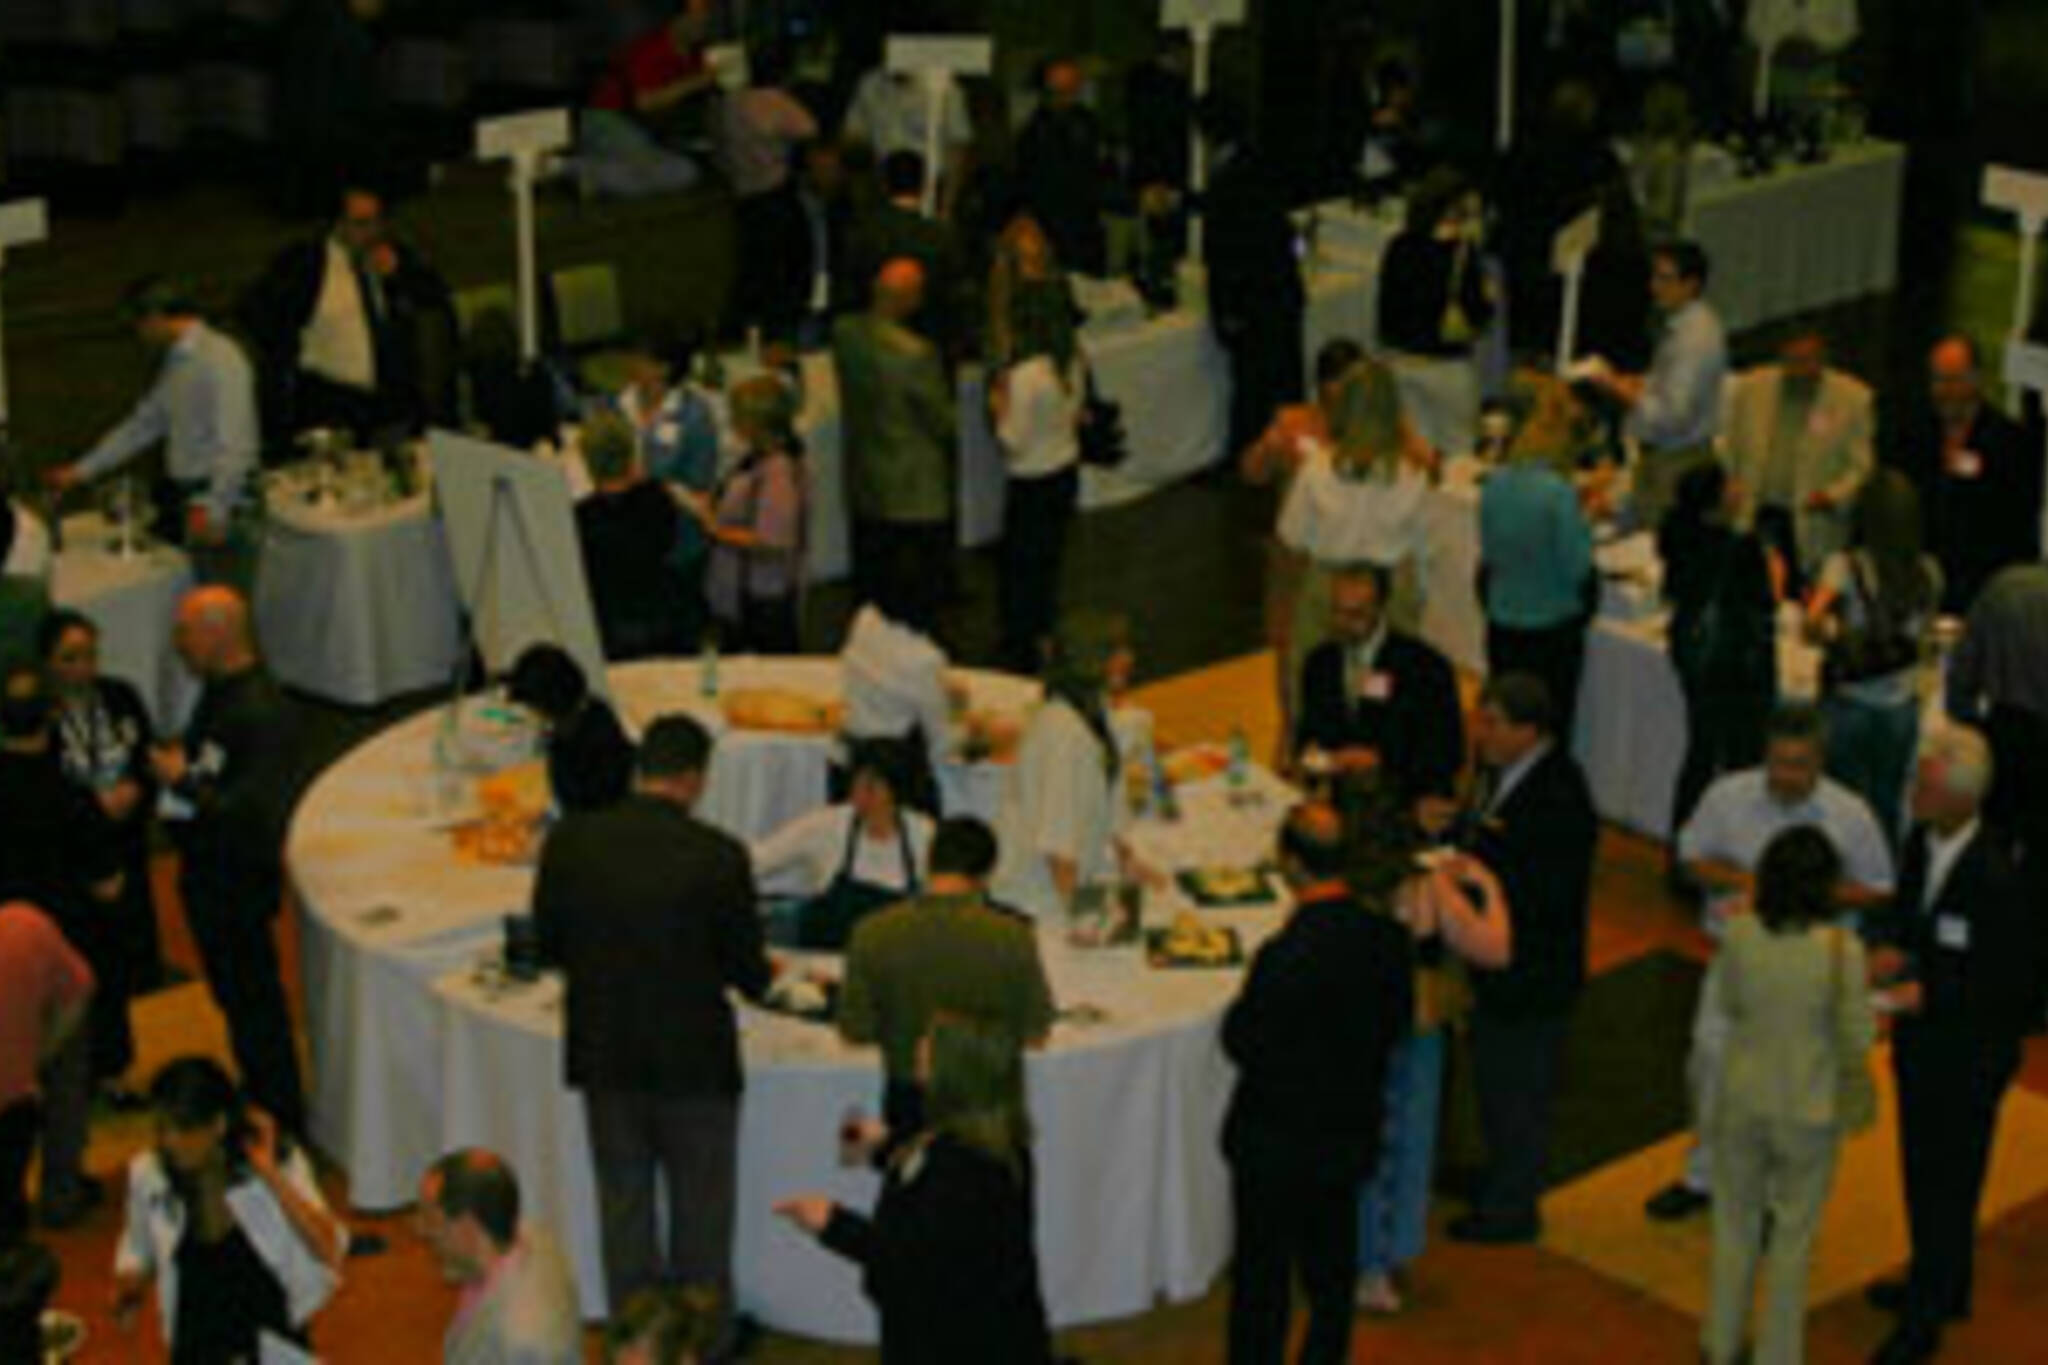 The tasting floor.  The circular table at the centre was filled with cheese.